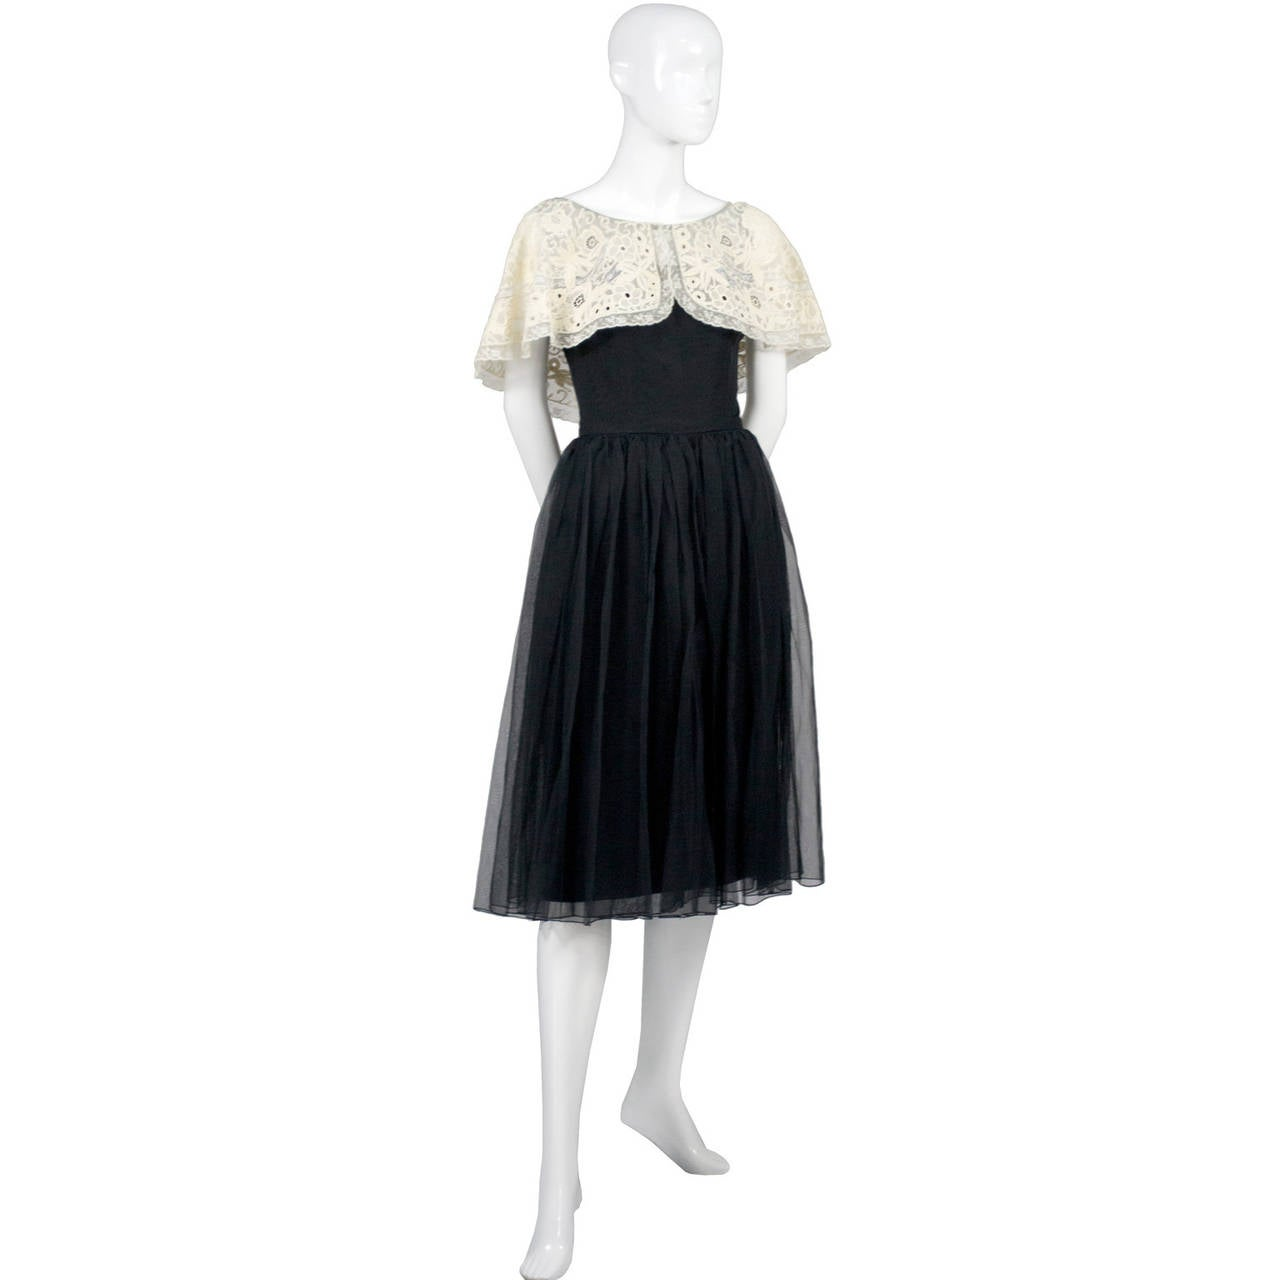 Larry Aldrich 1950s Vintage Dress Black Organza Wide Fine Lace Collar 2